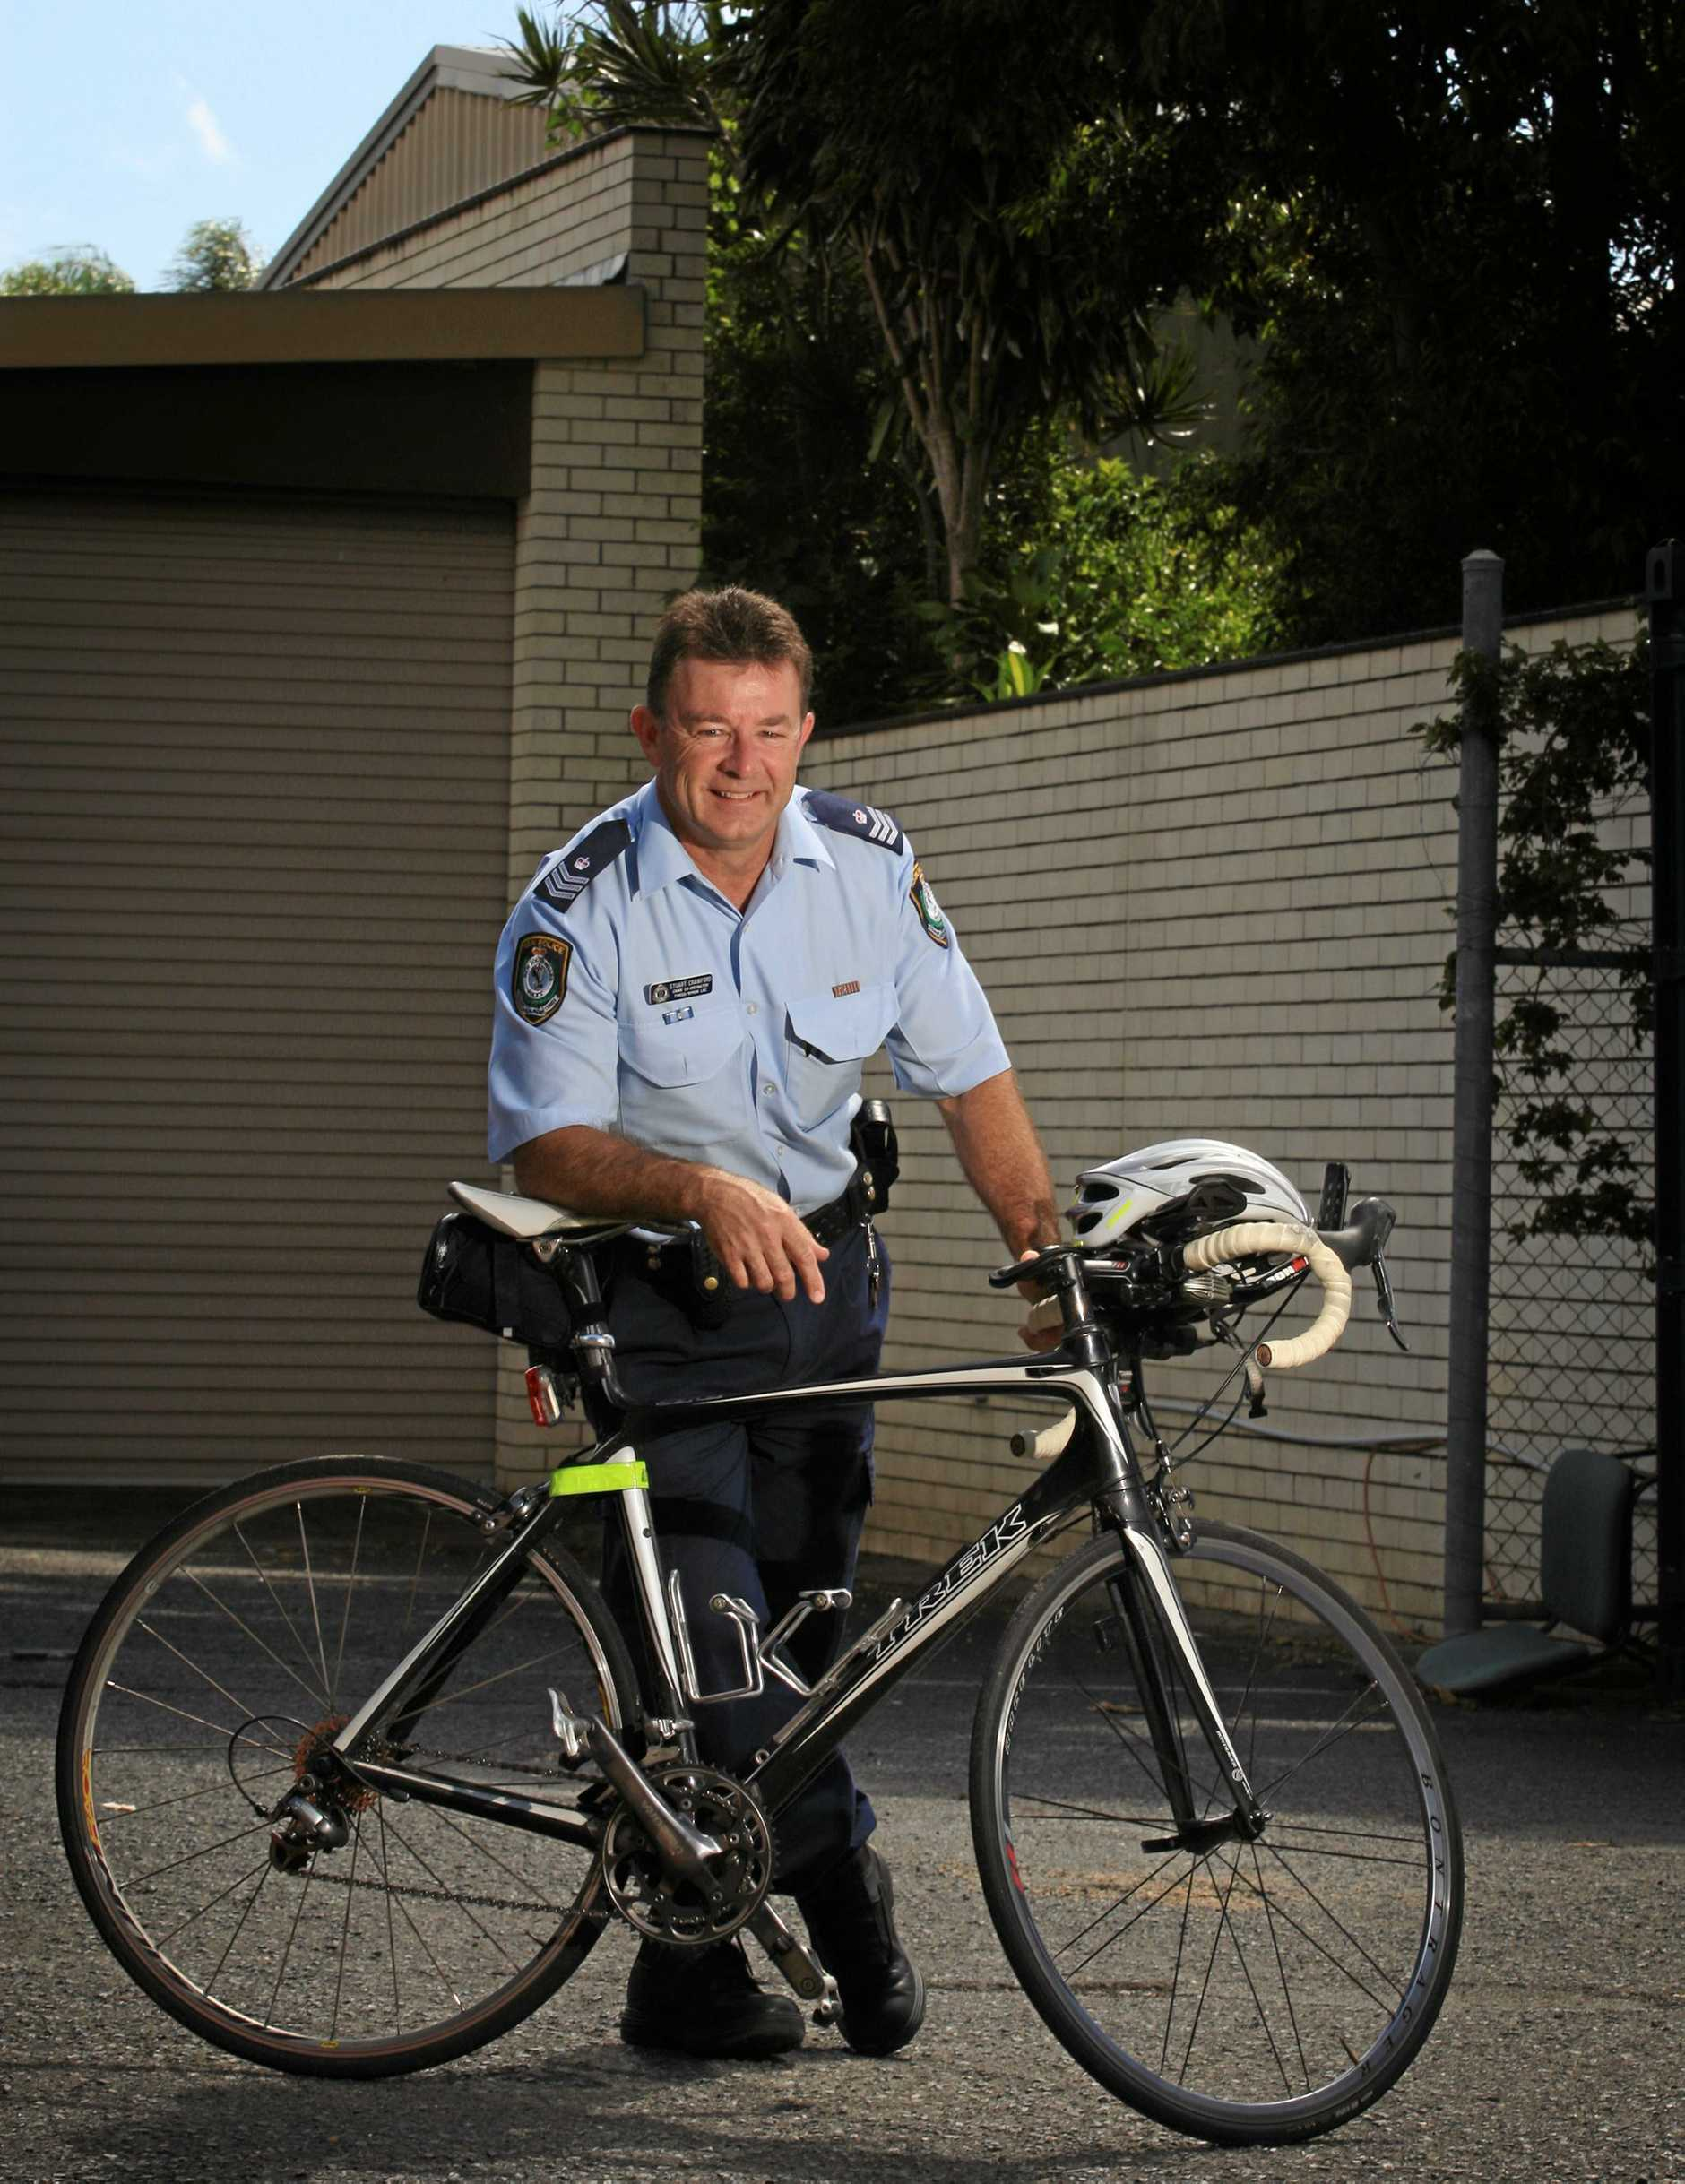 Stuart Crawford won an award at the Twin Towns Triathlon Club during his time as a police officer.